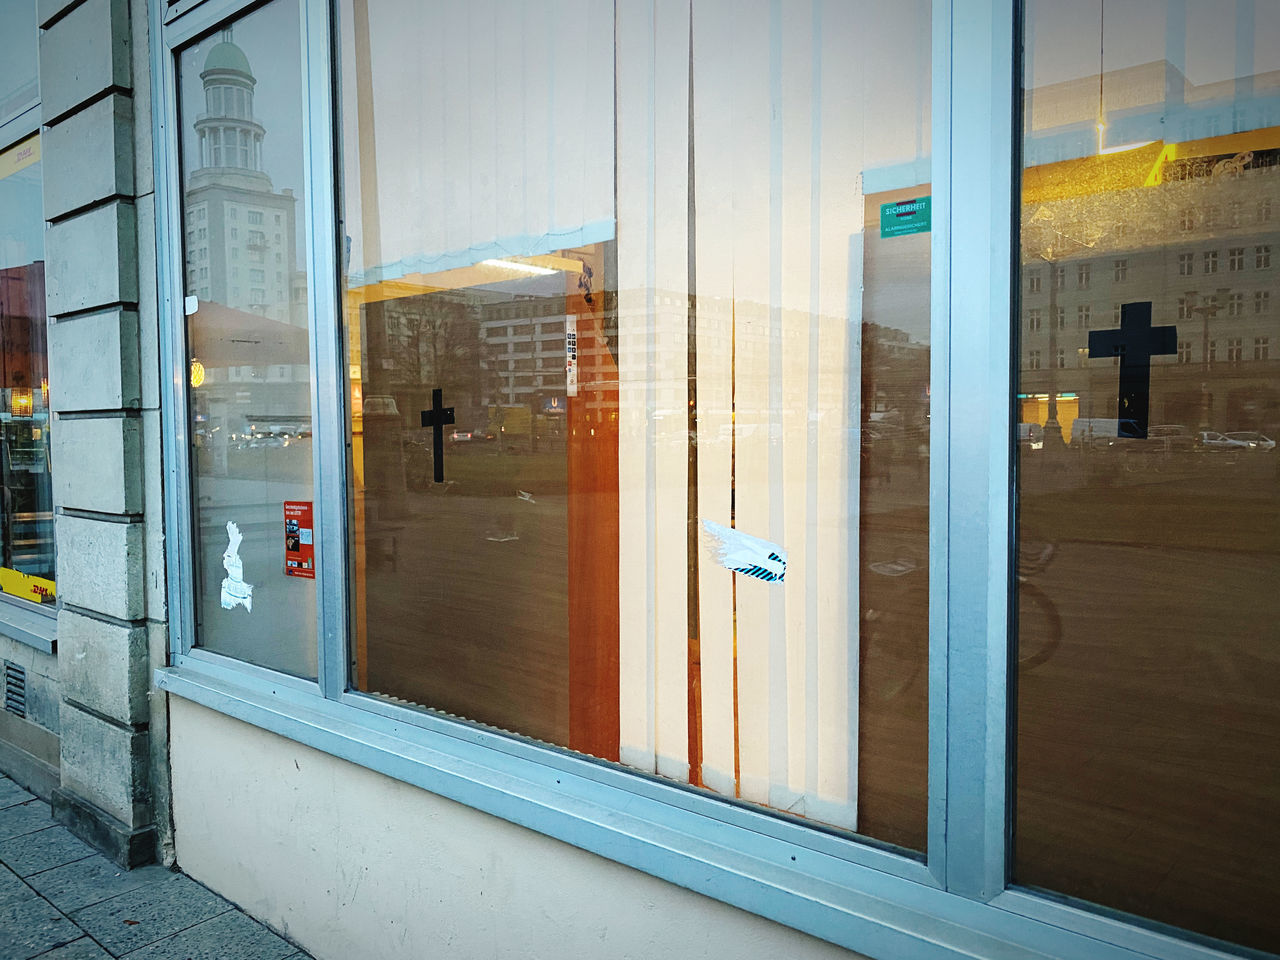 architecture, door, entrance, built structure, glass - material, transparent, no people, building exterior, building, reflection, closed, outdoors, security, day, window, protection, city, safety, communication, glass